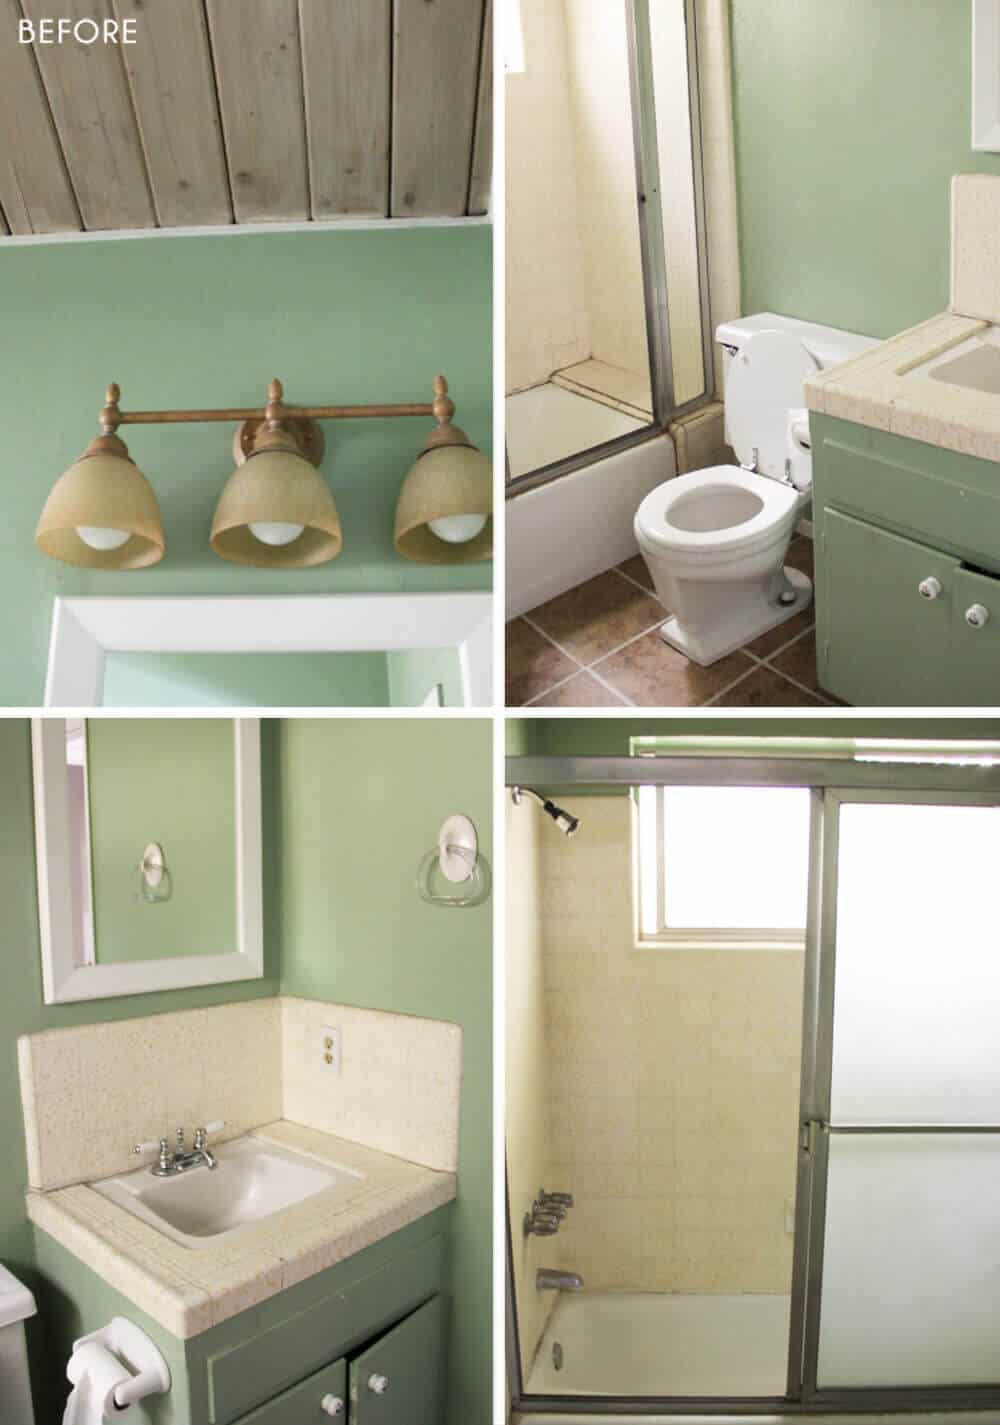 Before-Grid-Guest-Bathroom-Remodel-Emily-Henderson-Design